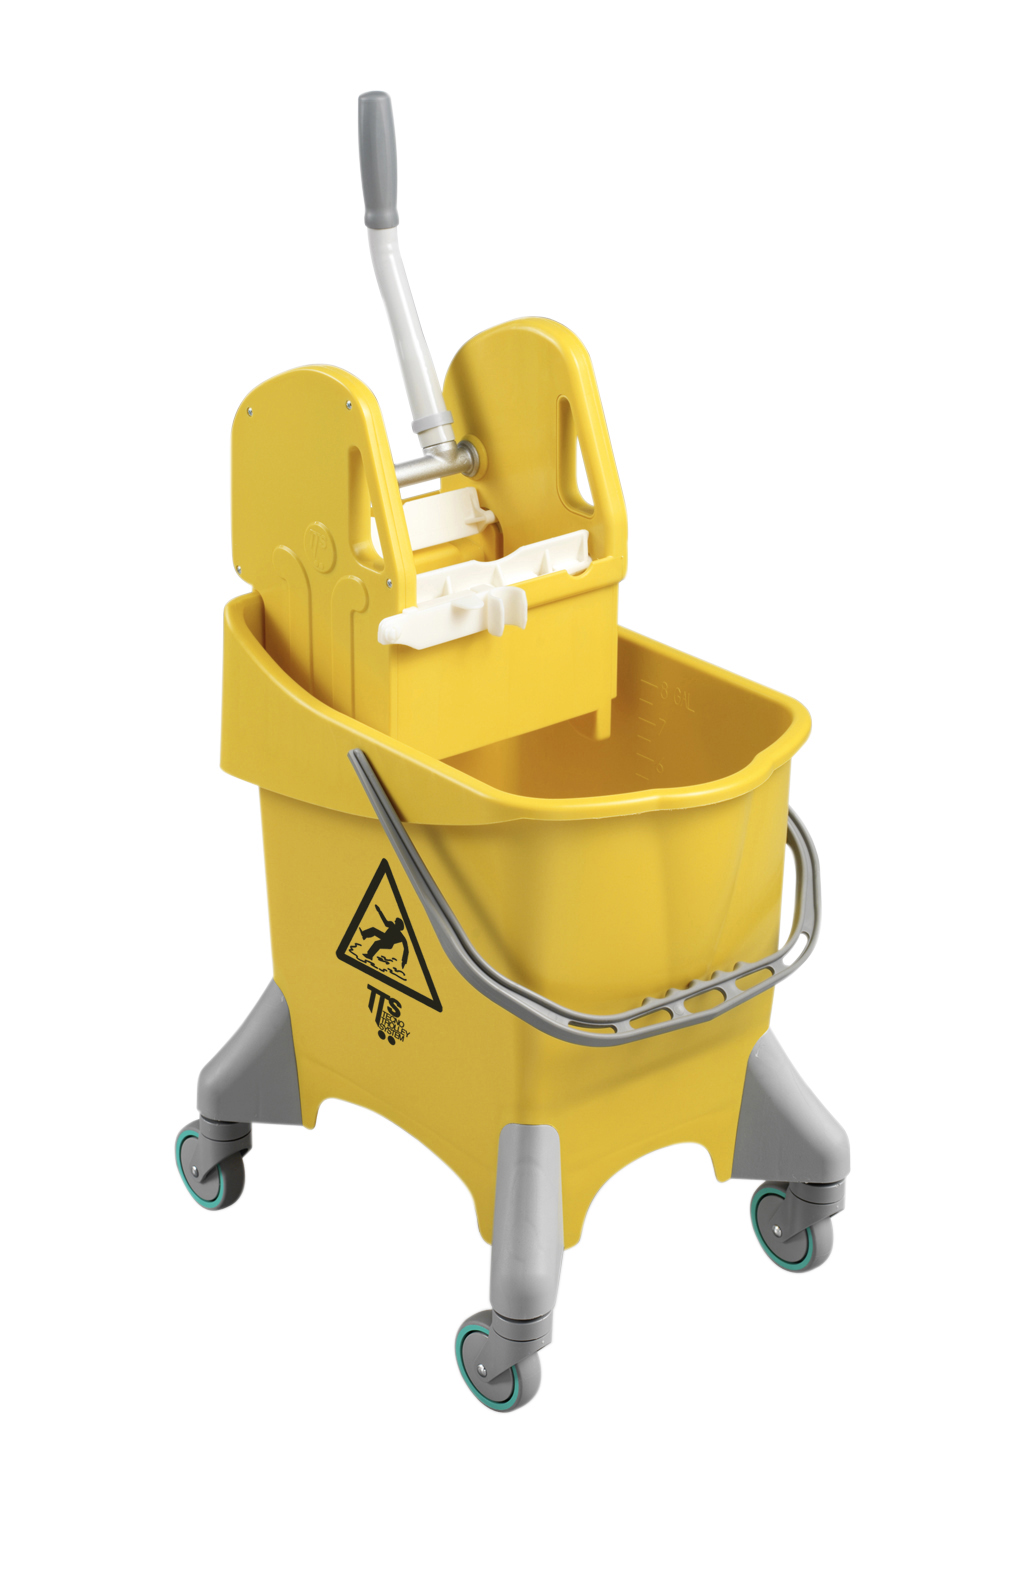 Kentucky Mop Bucket 25Litre Image